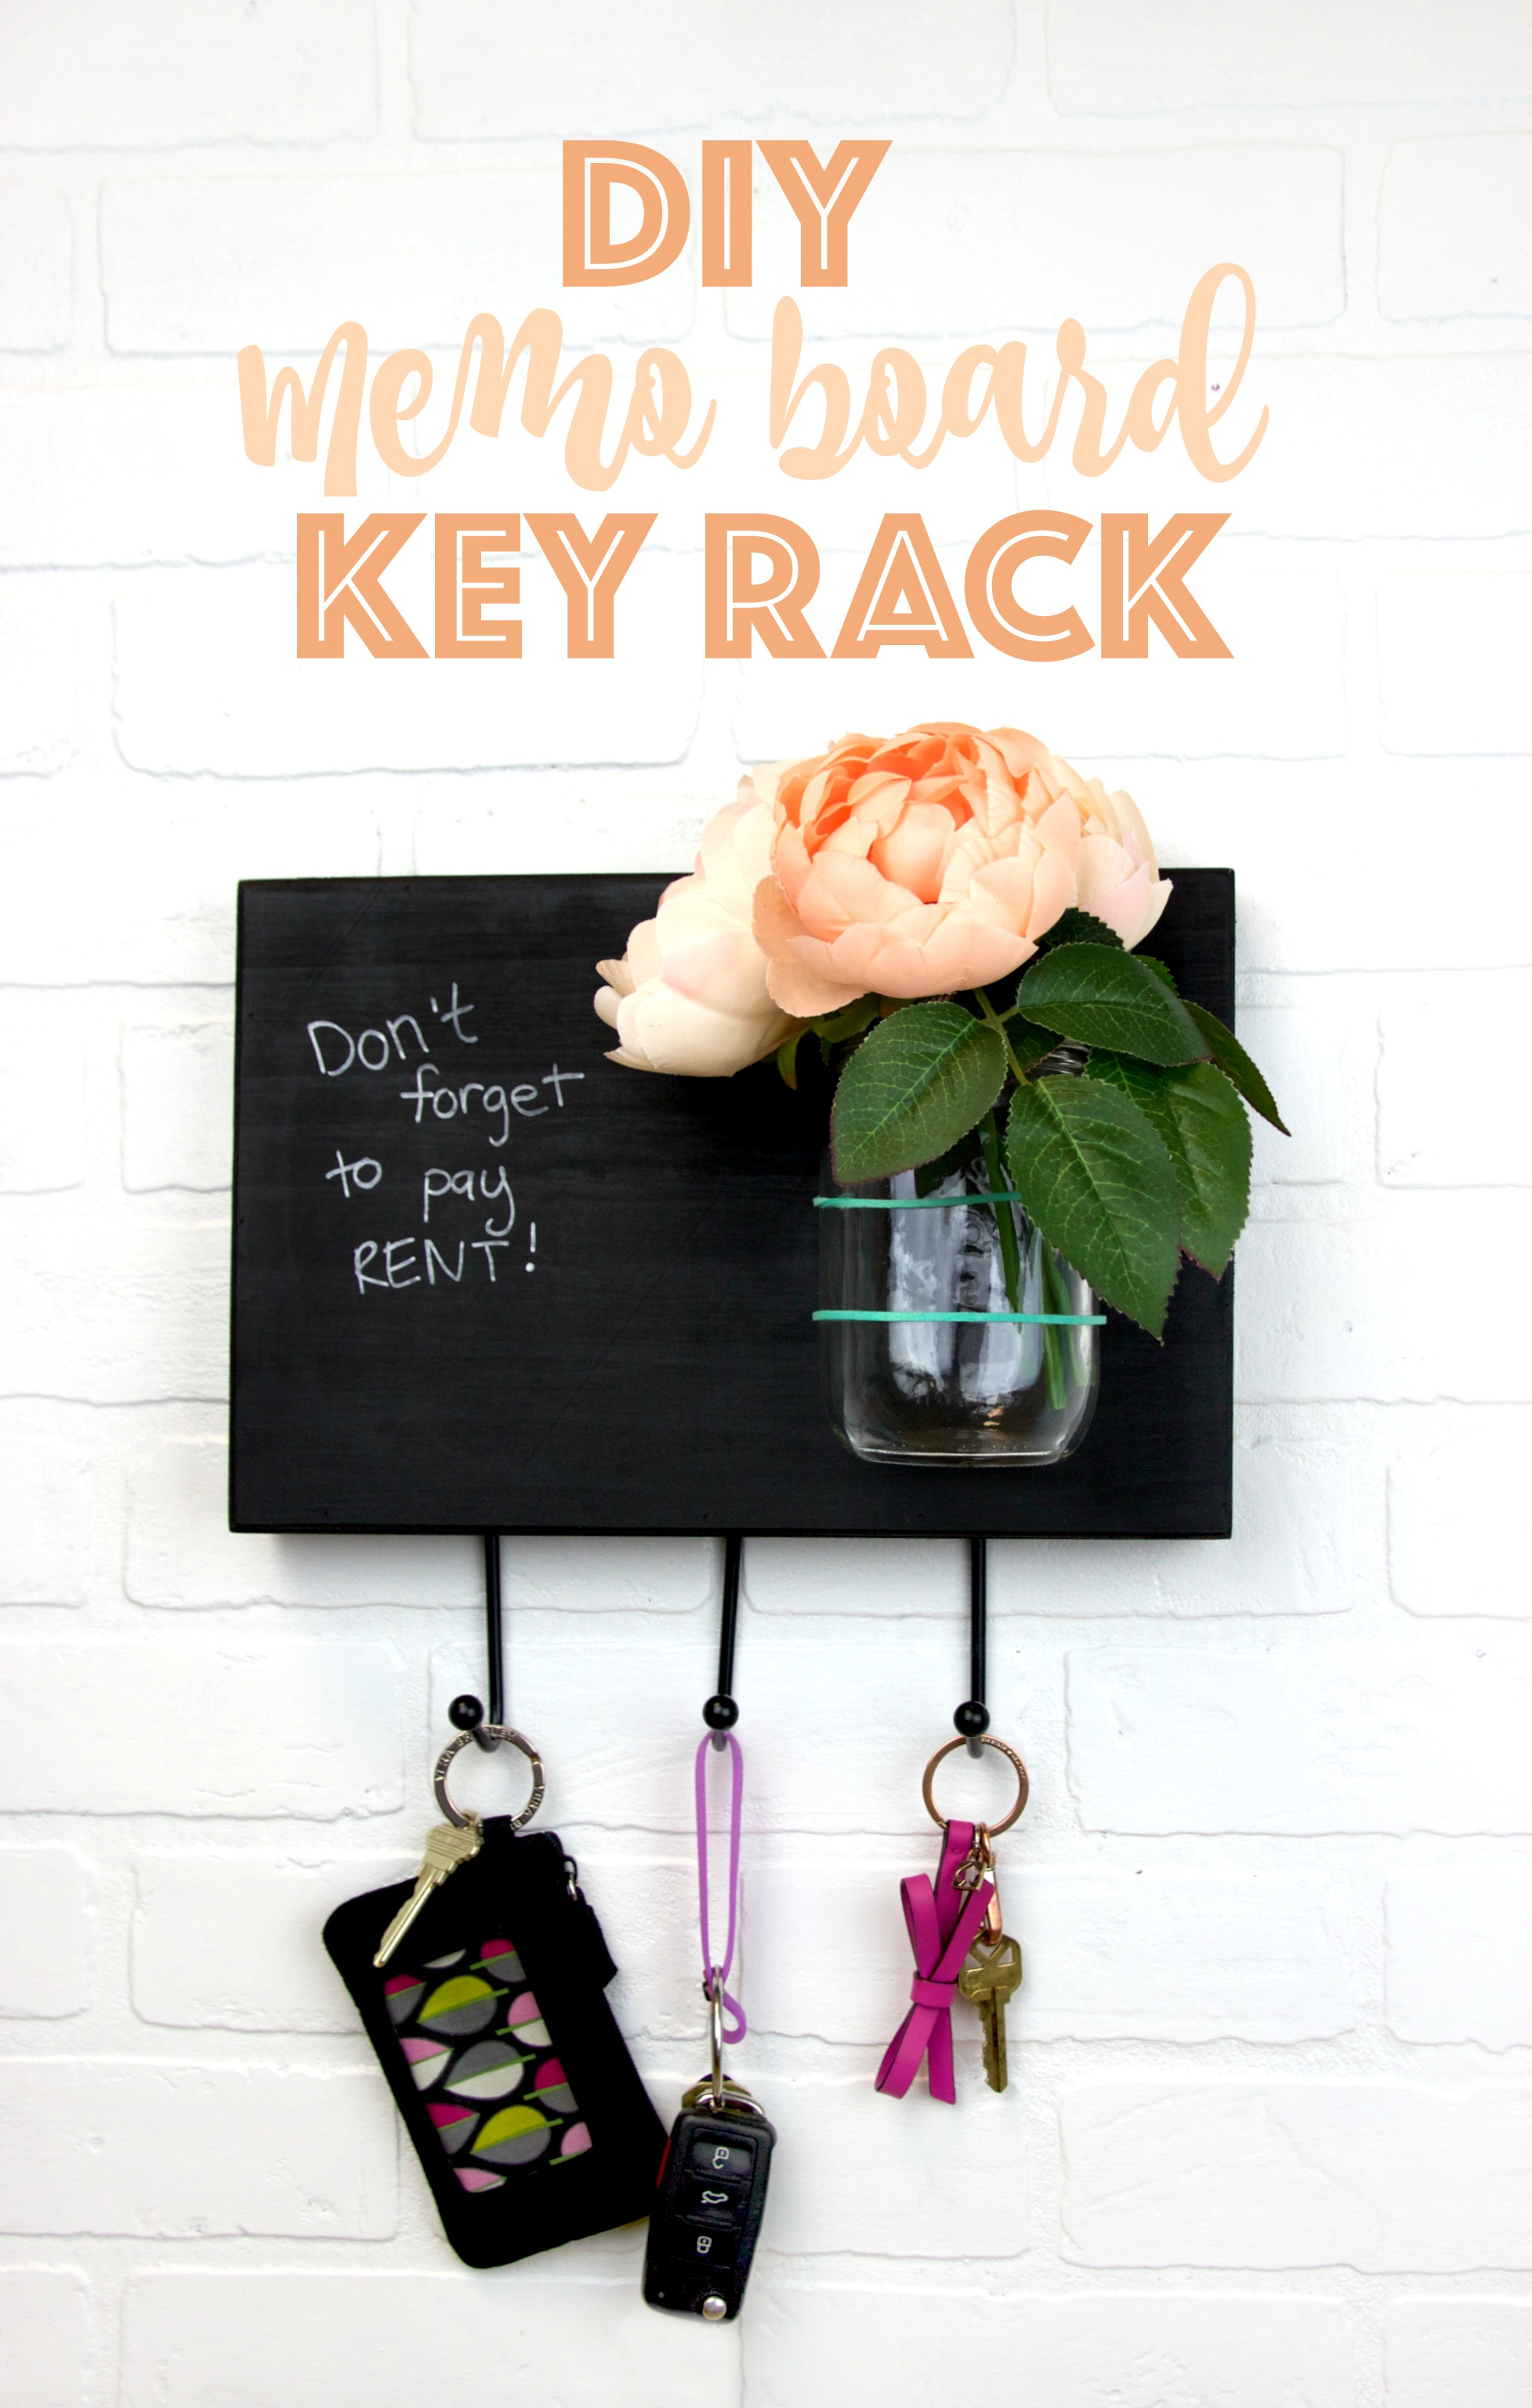 DIY_memo_board_key_rack